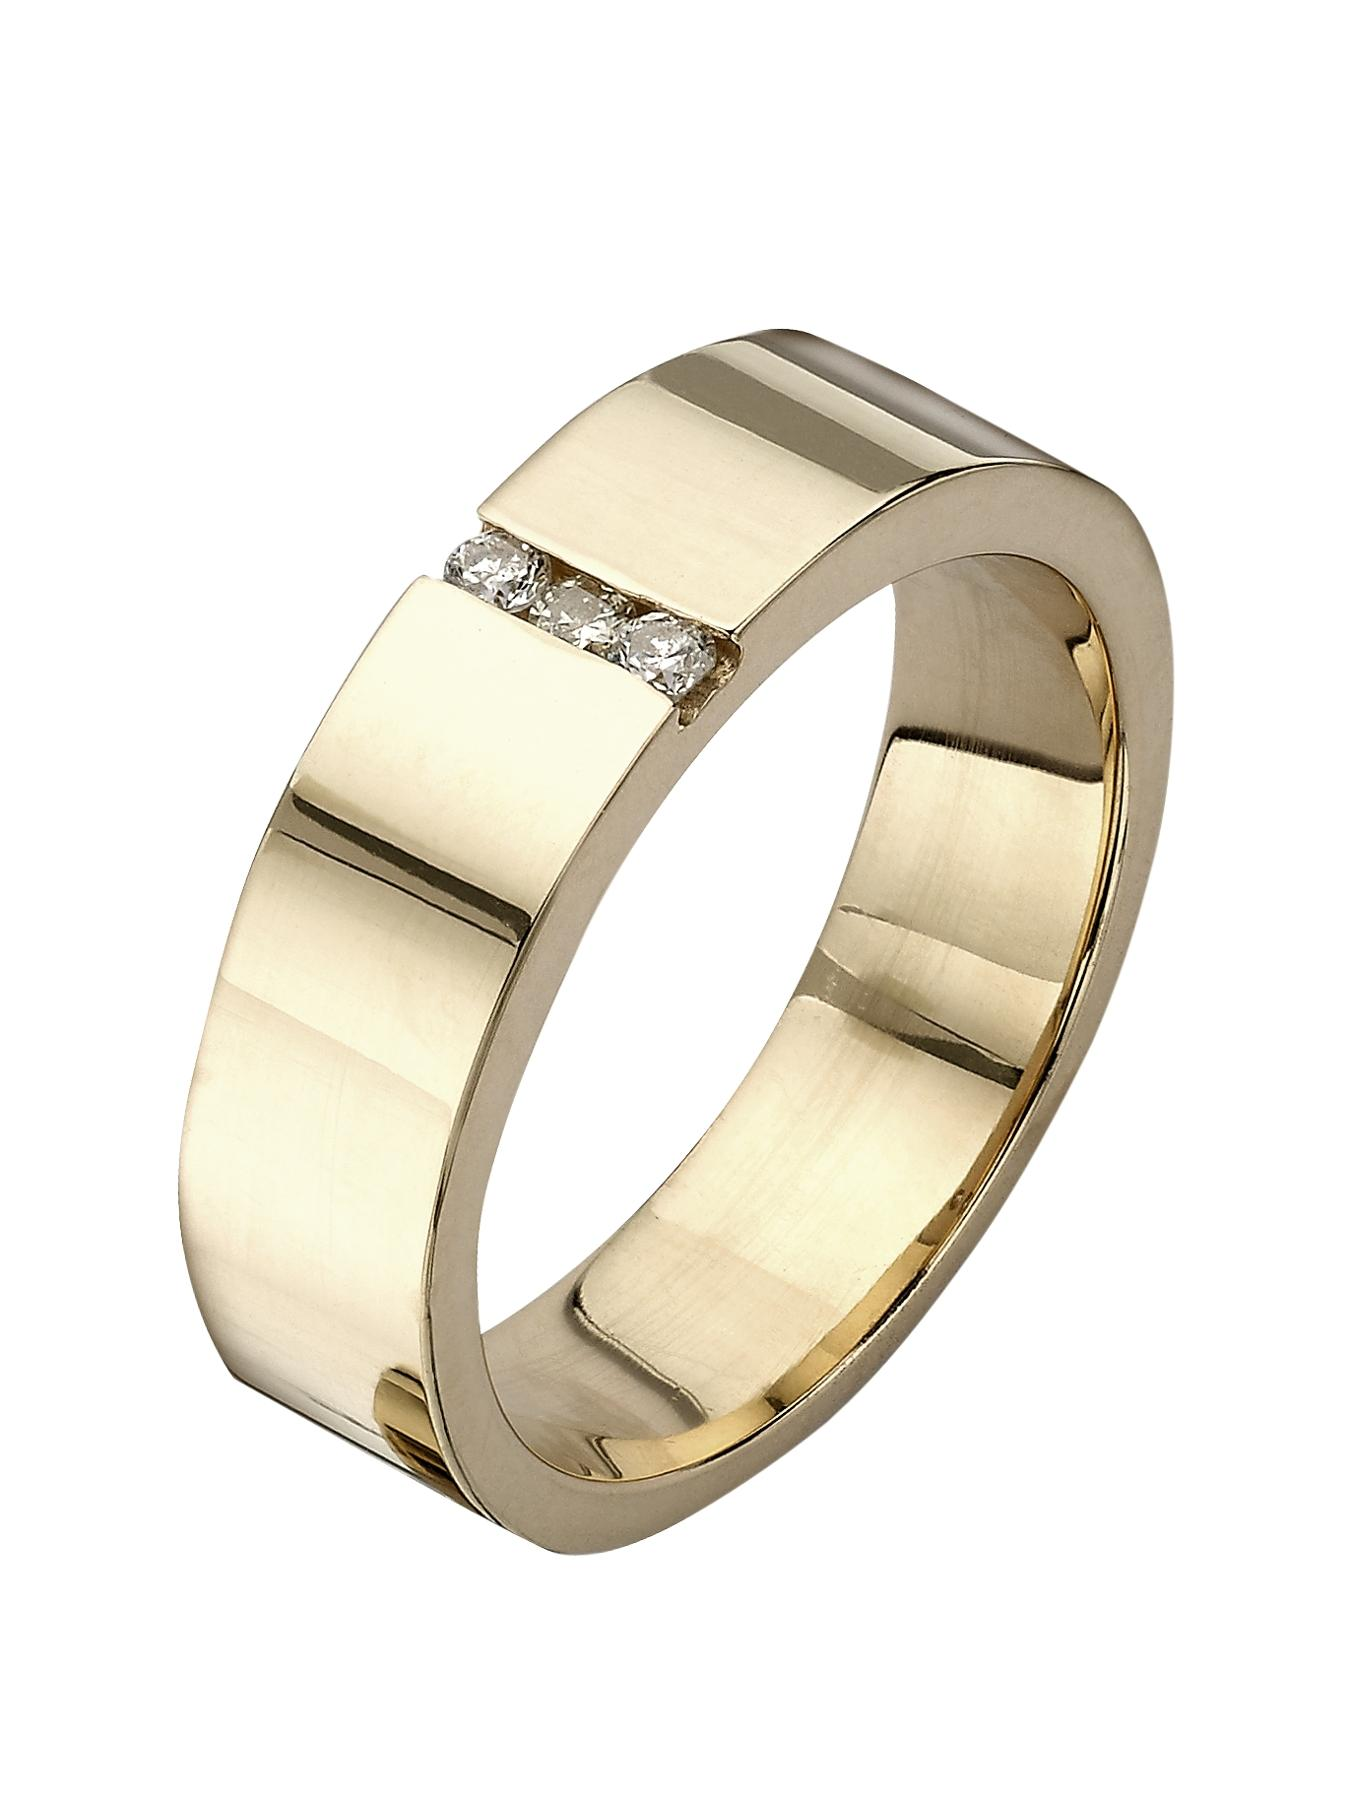 Cheap wedding rings liverpool